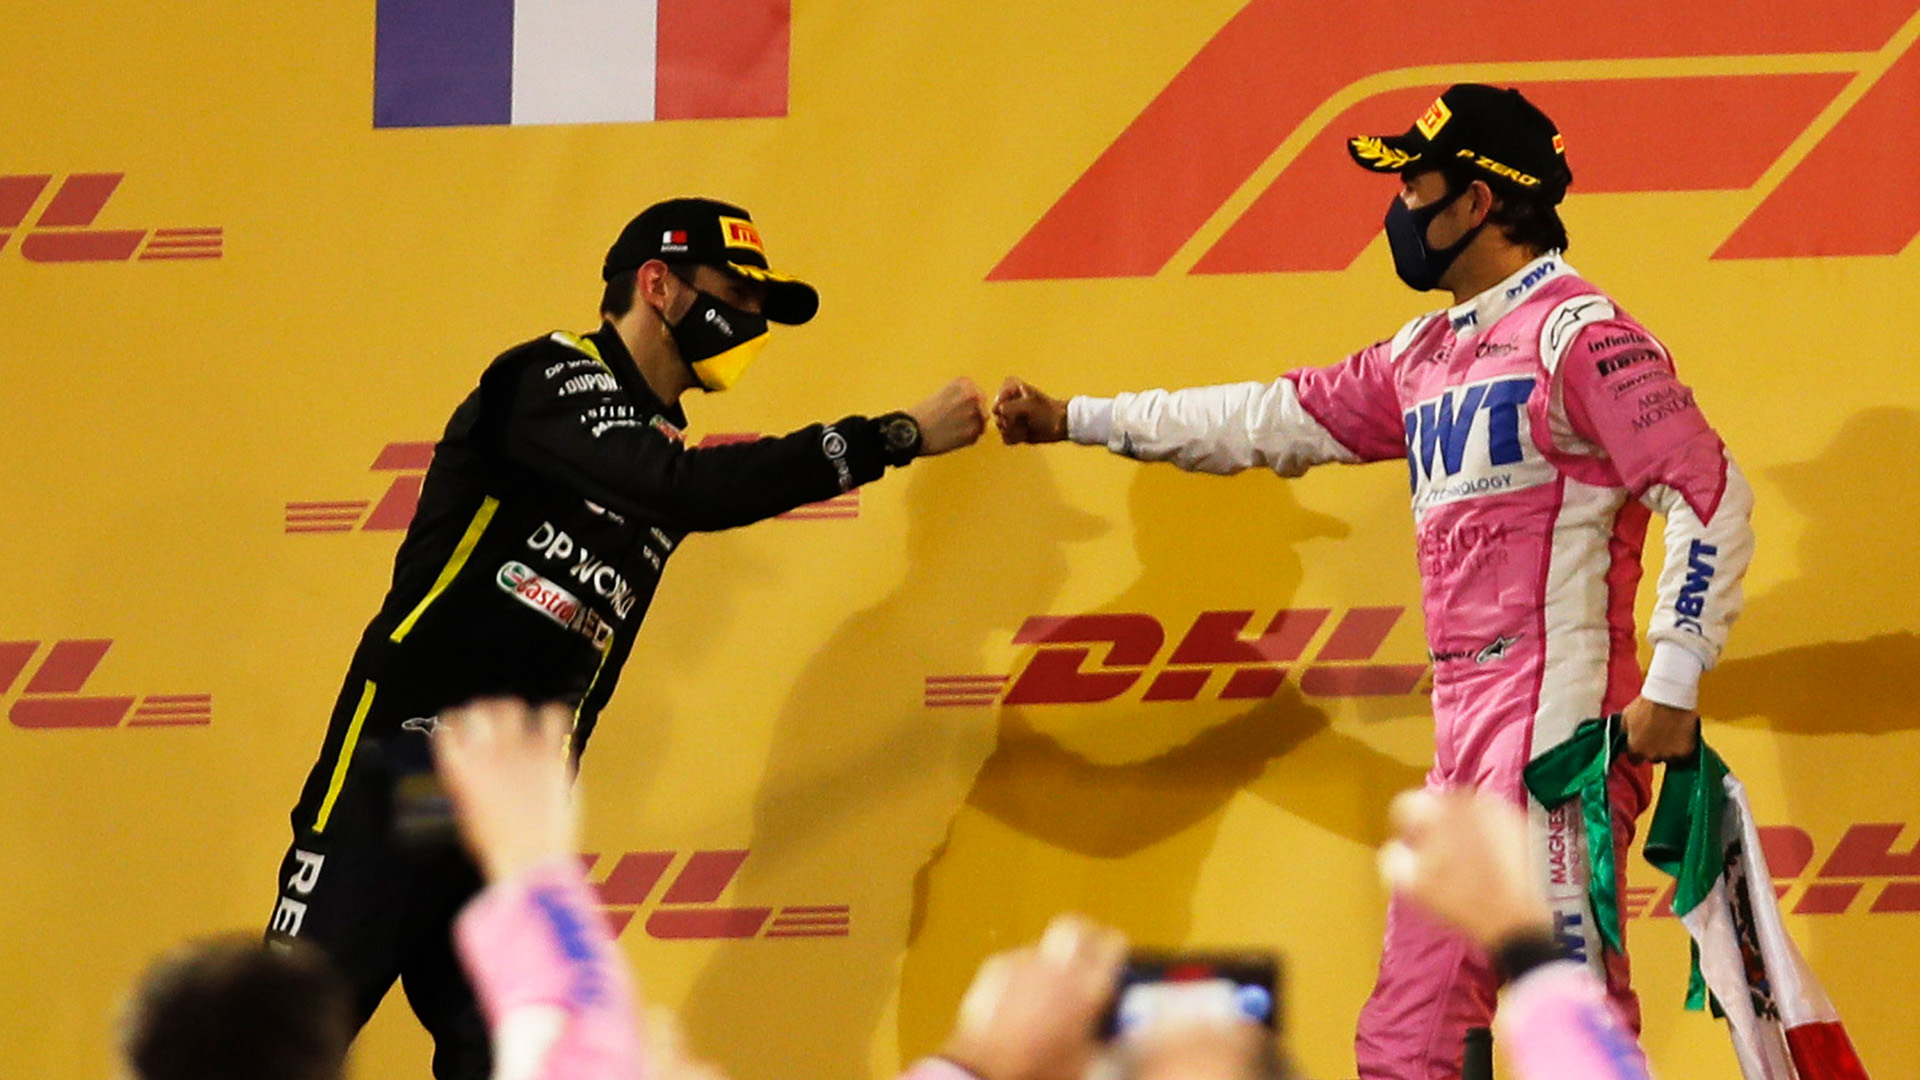 Sergio Perez manages a fist bump with Esteban Ocon on the podium after the 2020 Sakhir Grand Prix